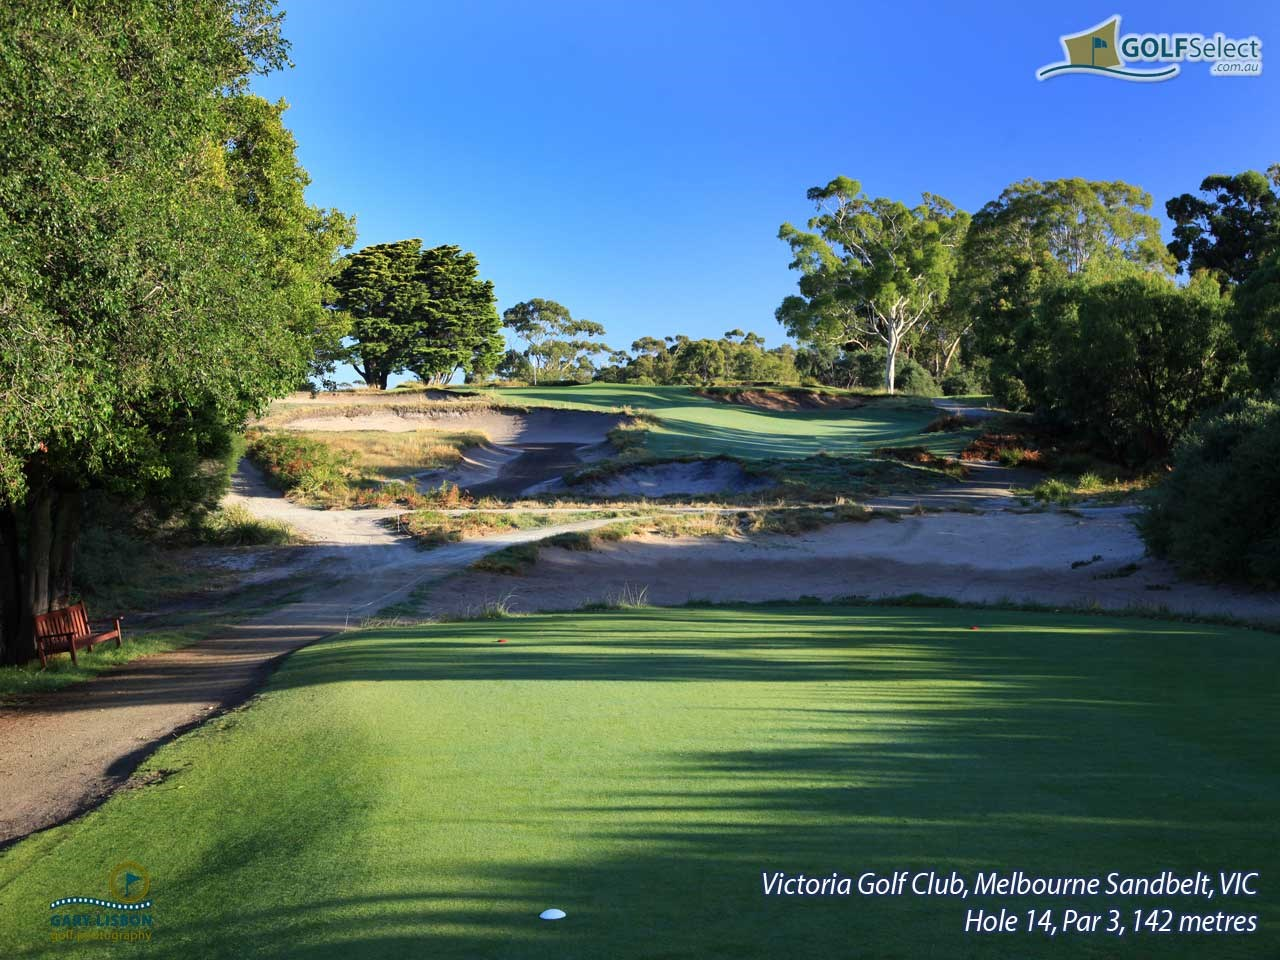 Victoria Golf Club Hole 14, Par 3, 147 metres